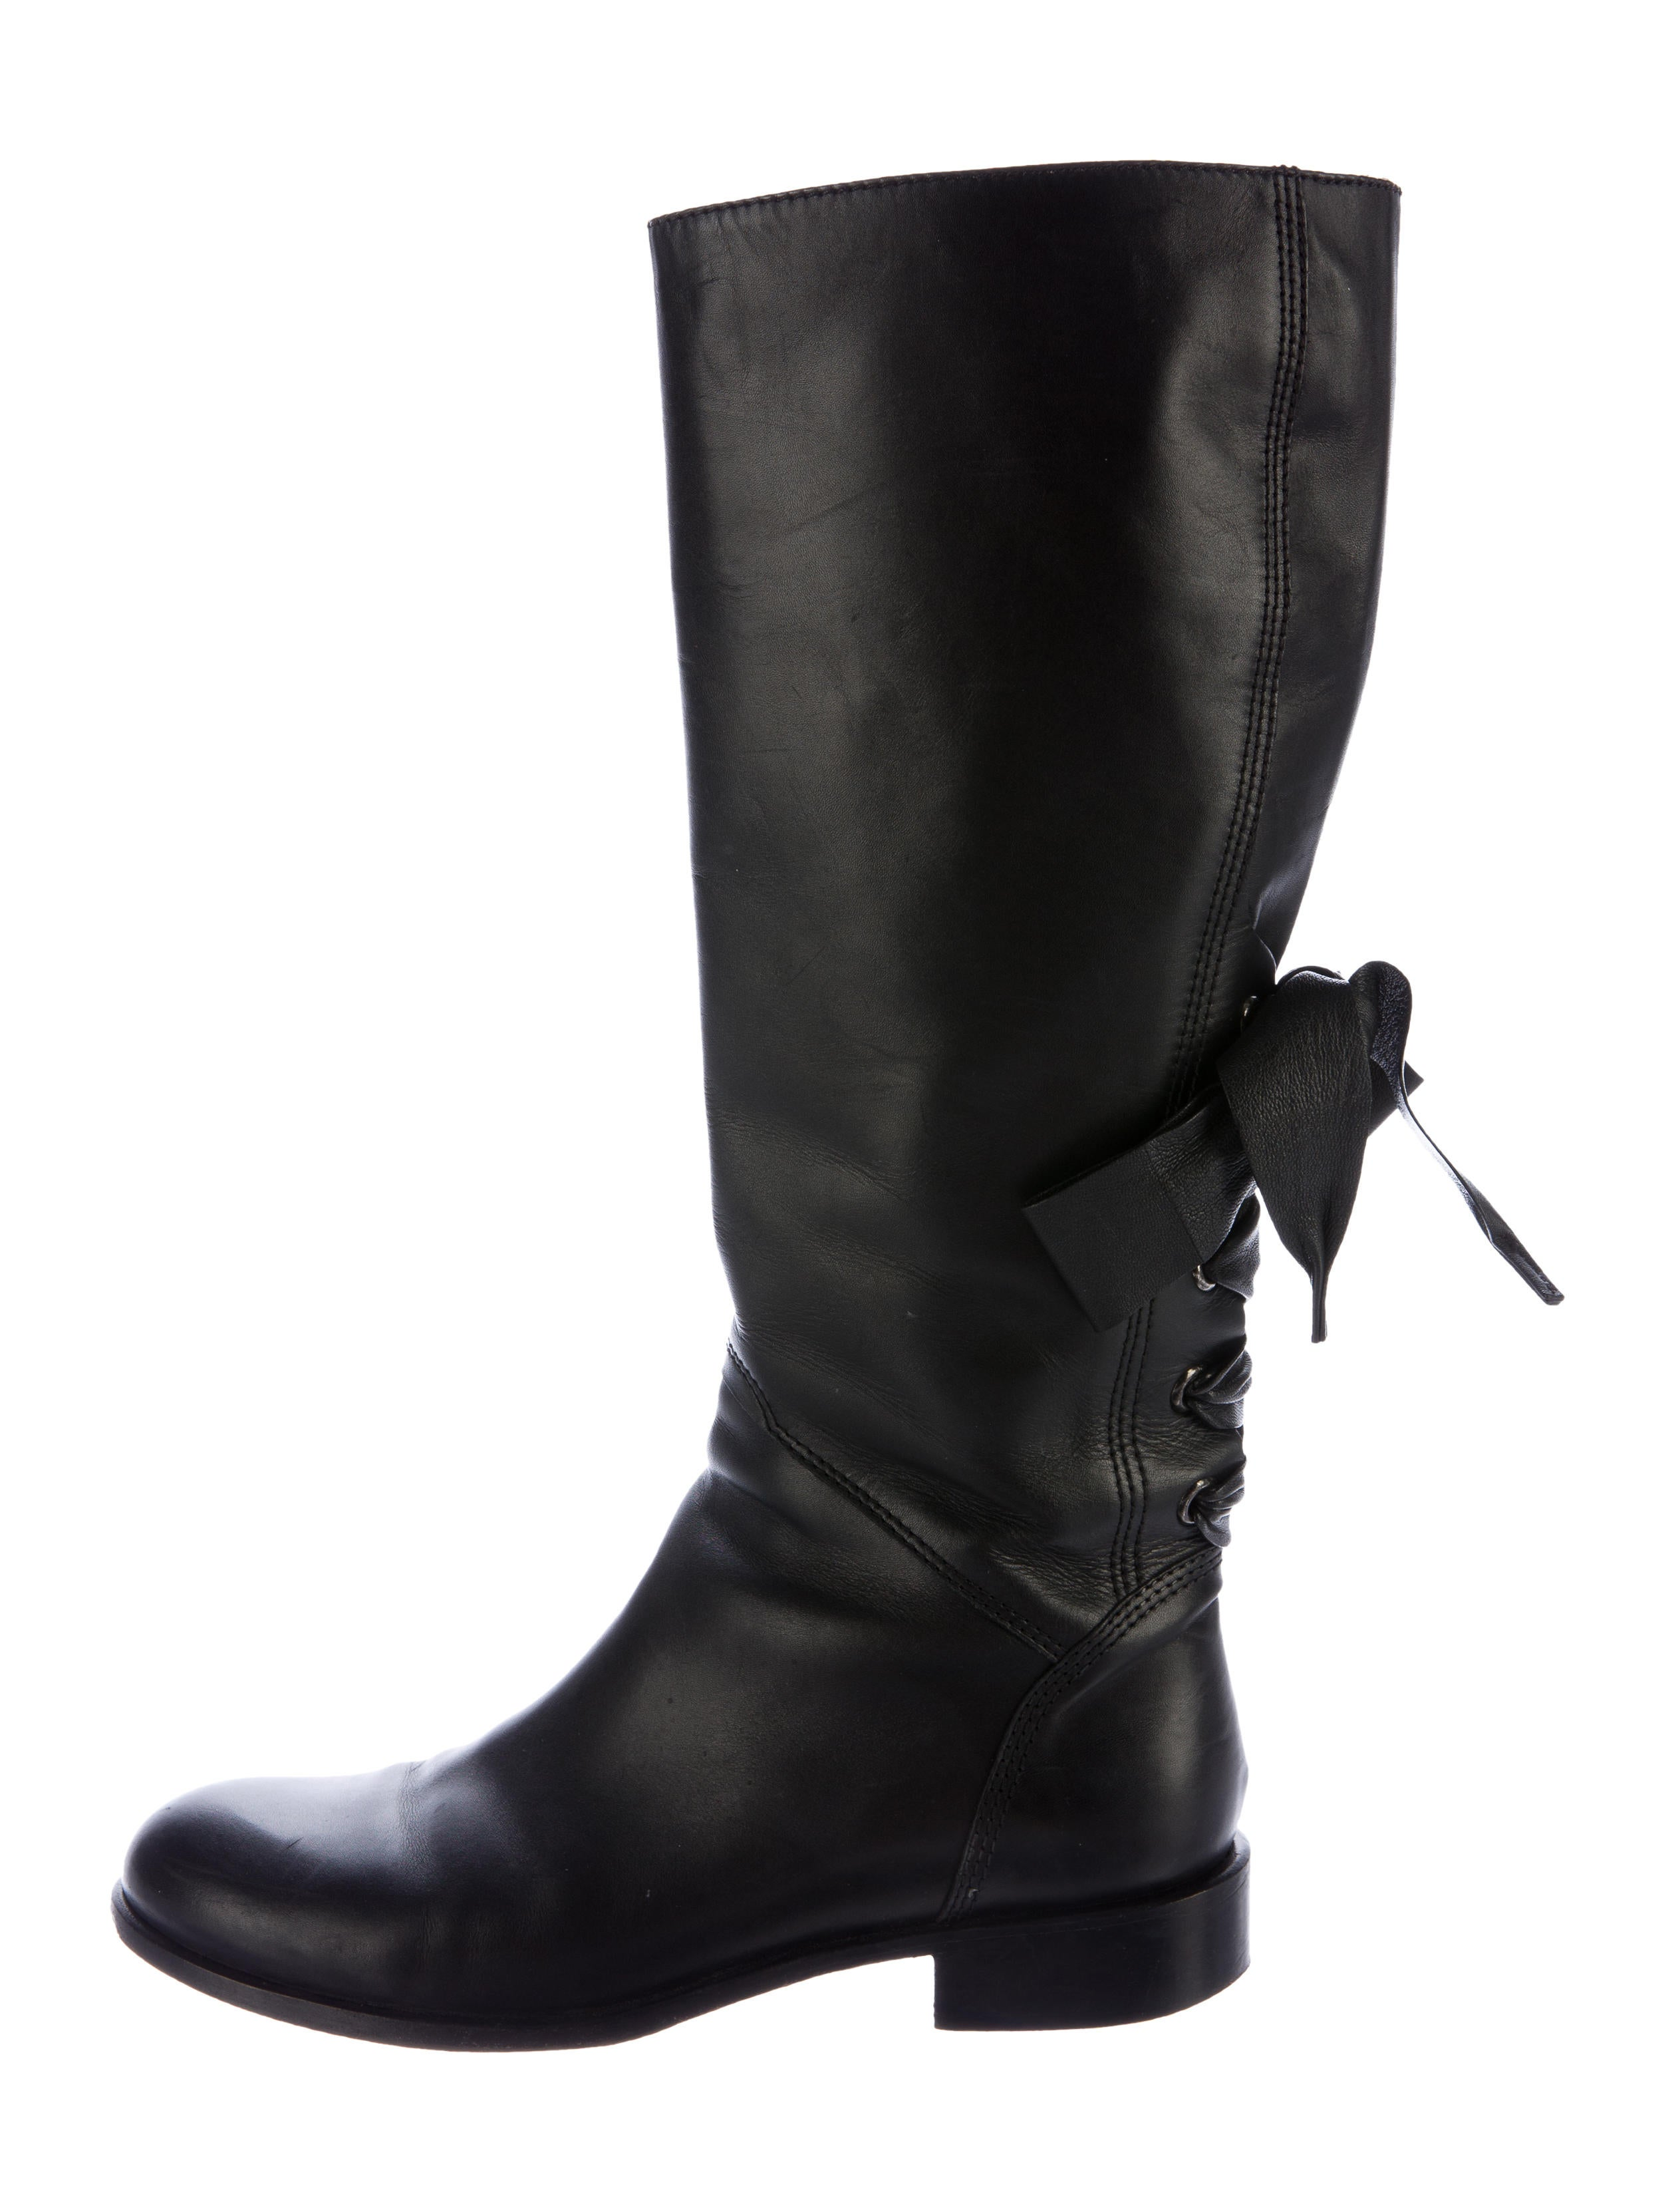 Valentino Bow-Accented Knee-High Boots buy cheap visa payment SlT4gIf